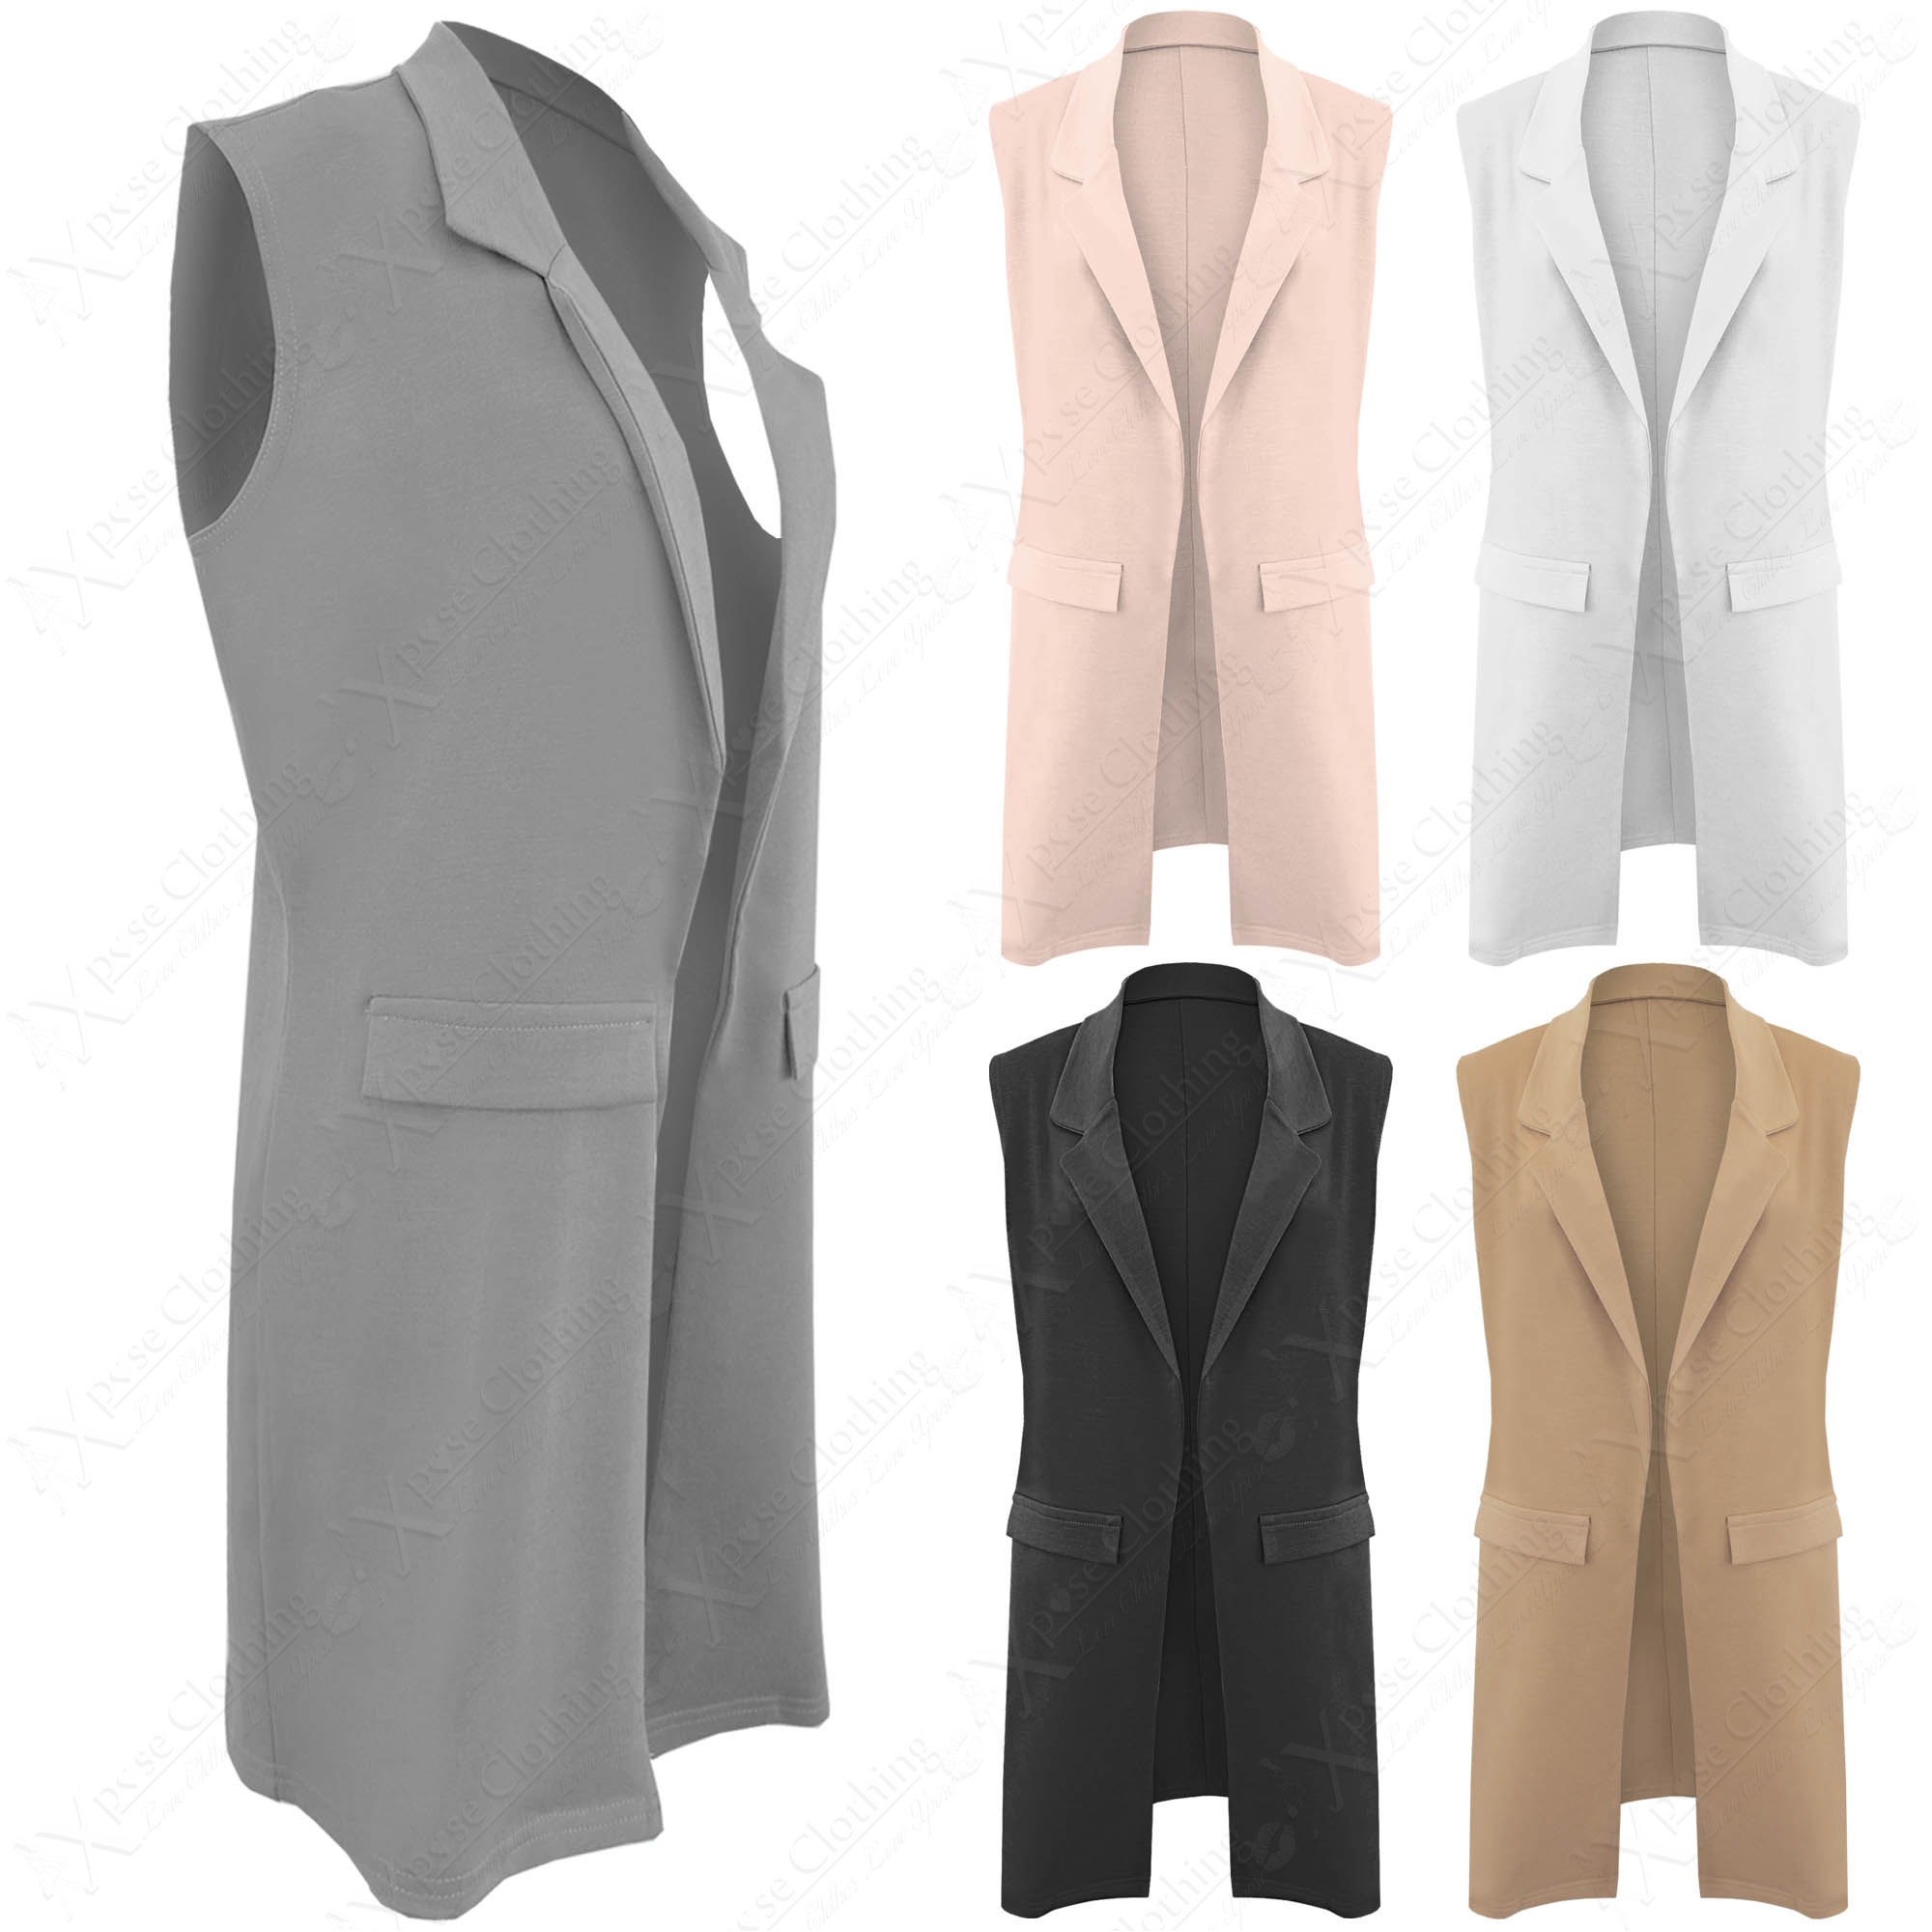 Find great deals on eBay for women sleeveless jackets. Shop with confidence.